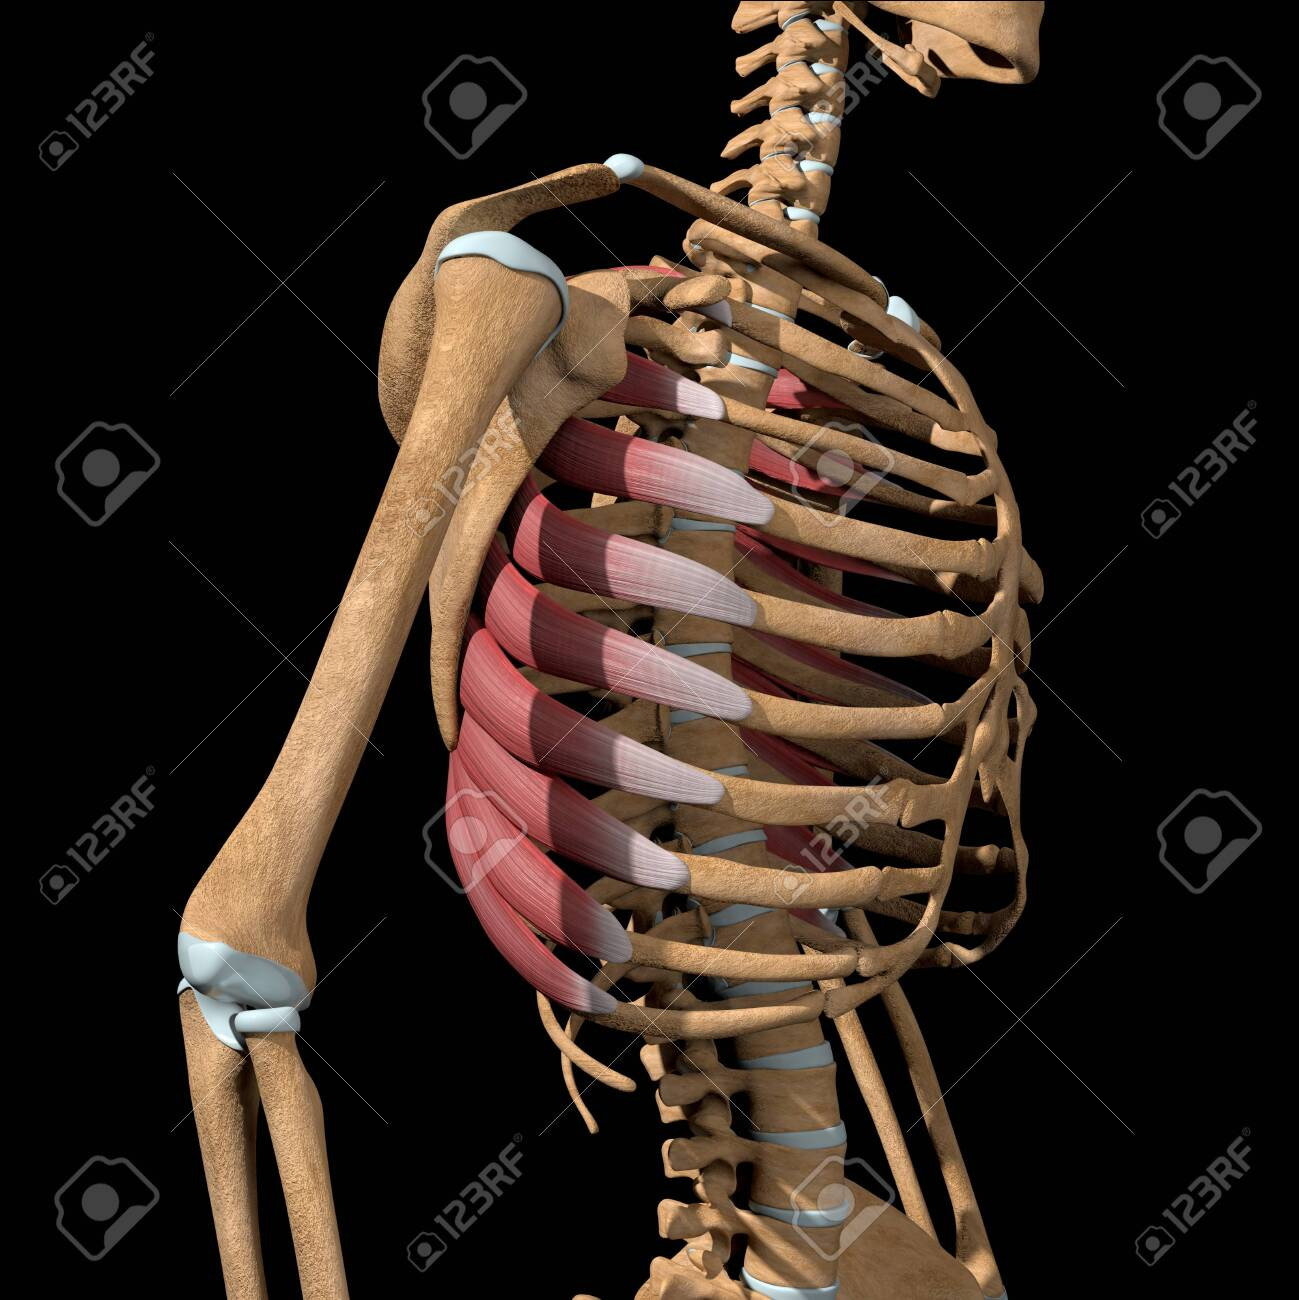 This 3d illustration shows the serratus anterior muscles on skeleton - 142173666